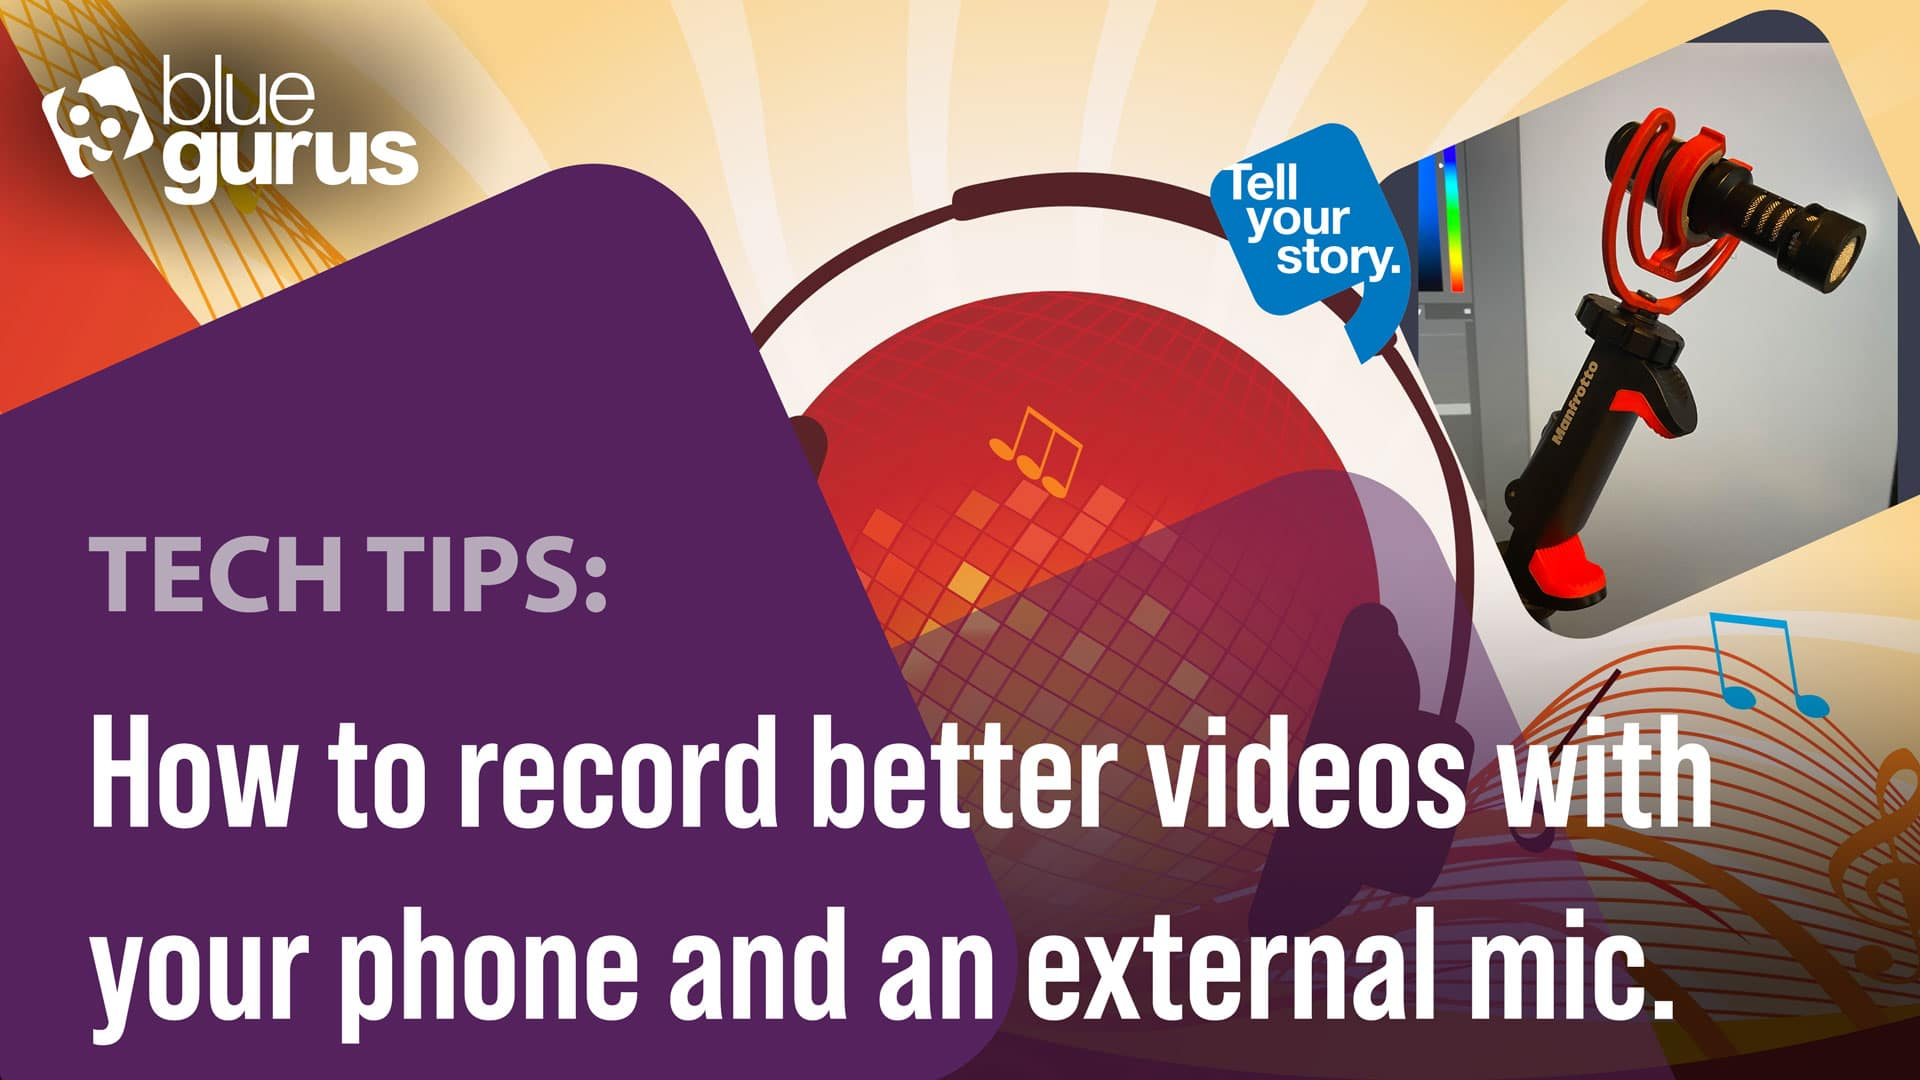 Tech Tips: How to record better videos with your phone and an external mic.